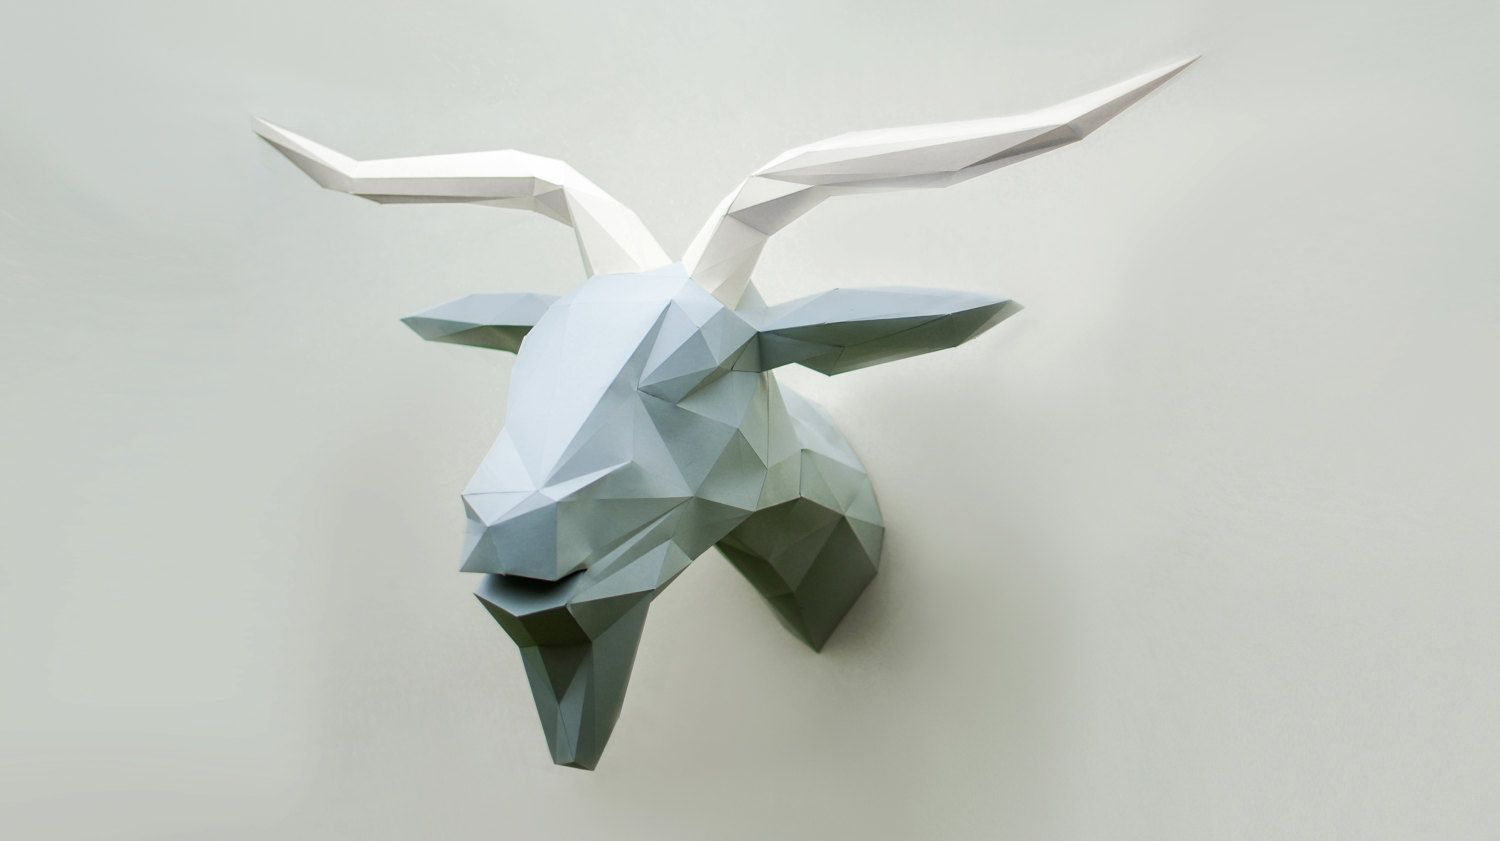 paper goat polygon goat cardboard template diy goat lowpoly goat